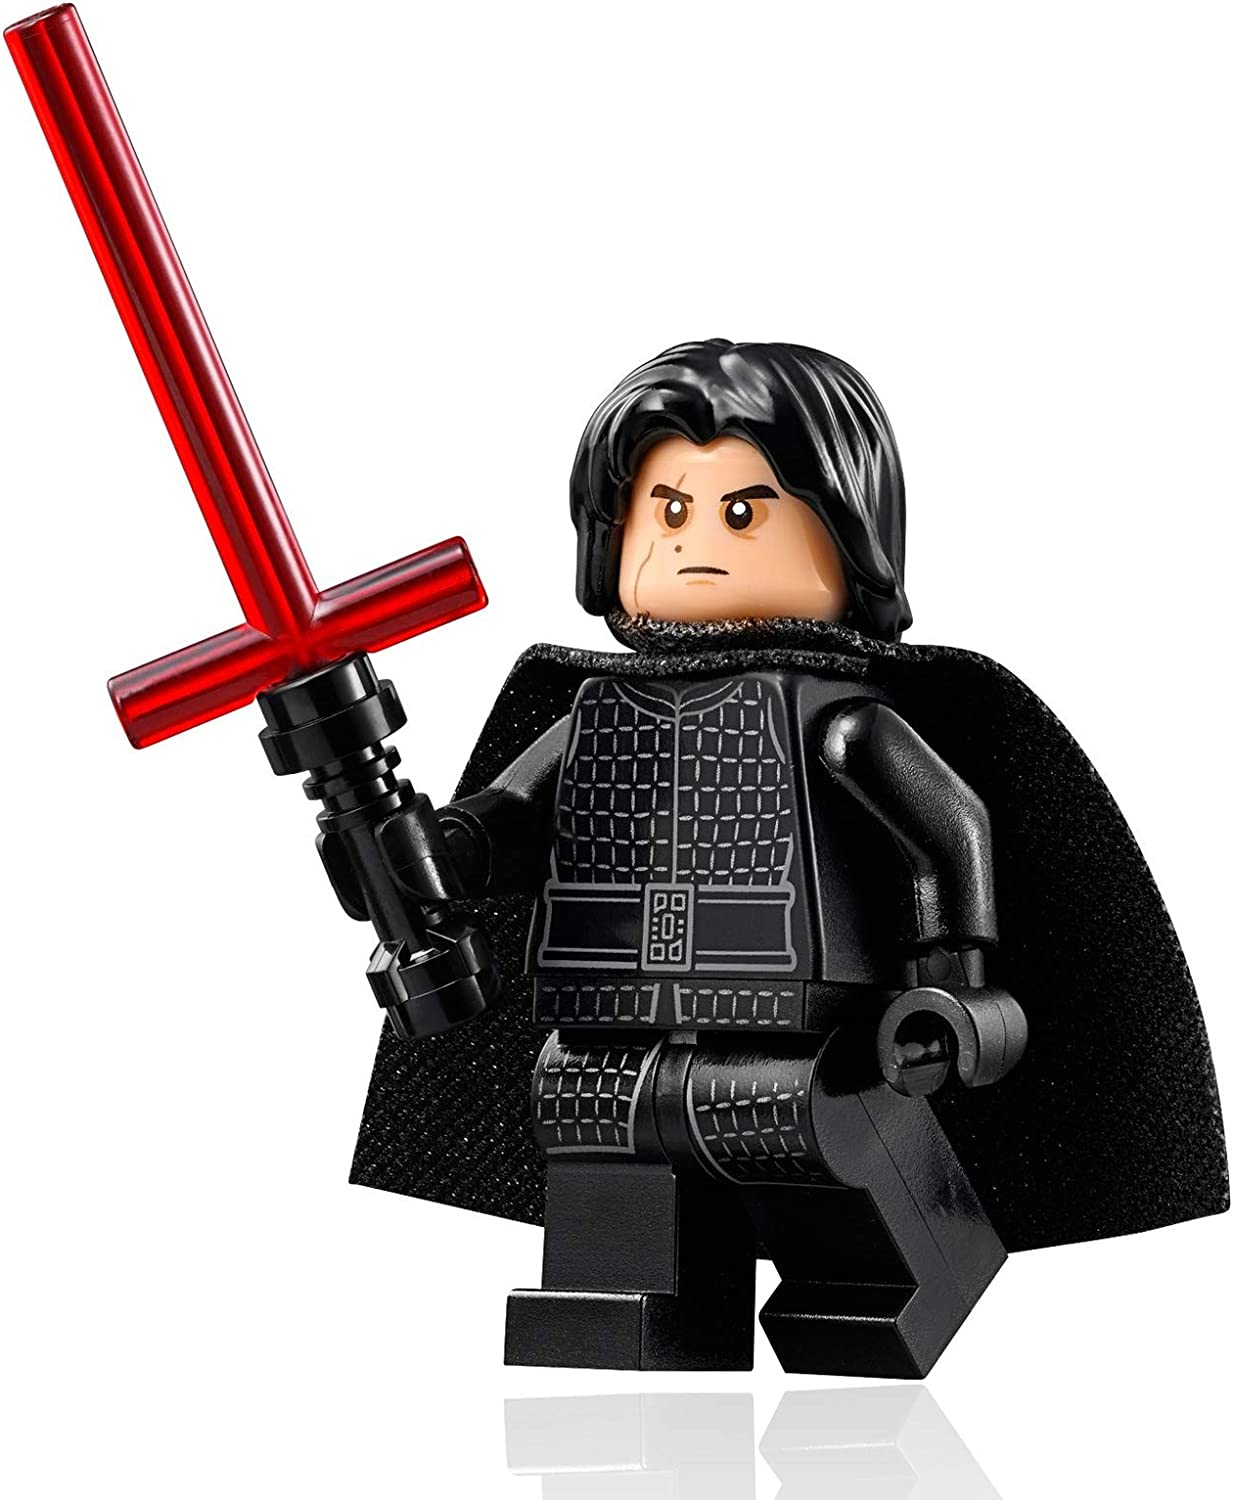 LEGO Star Wars The Last Jedi Minifigure - Kylo Ren (with Face Scar and Lightsaber) 75179